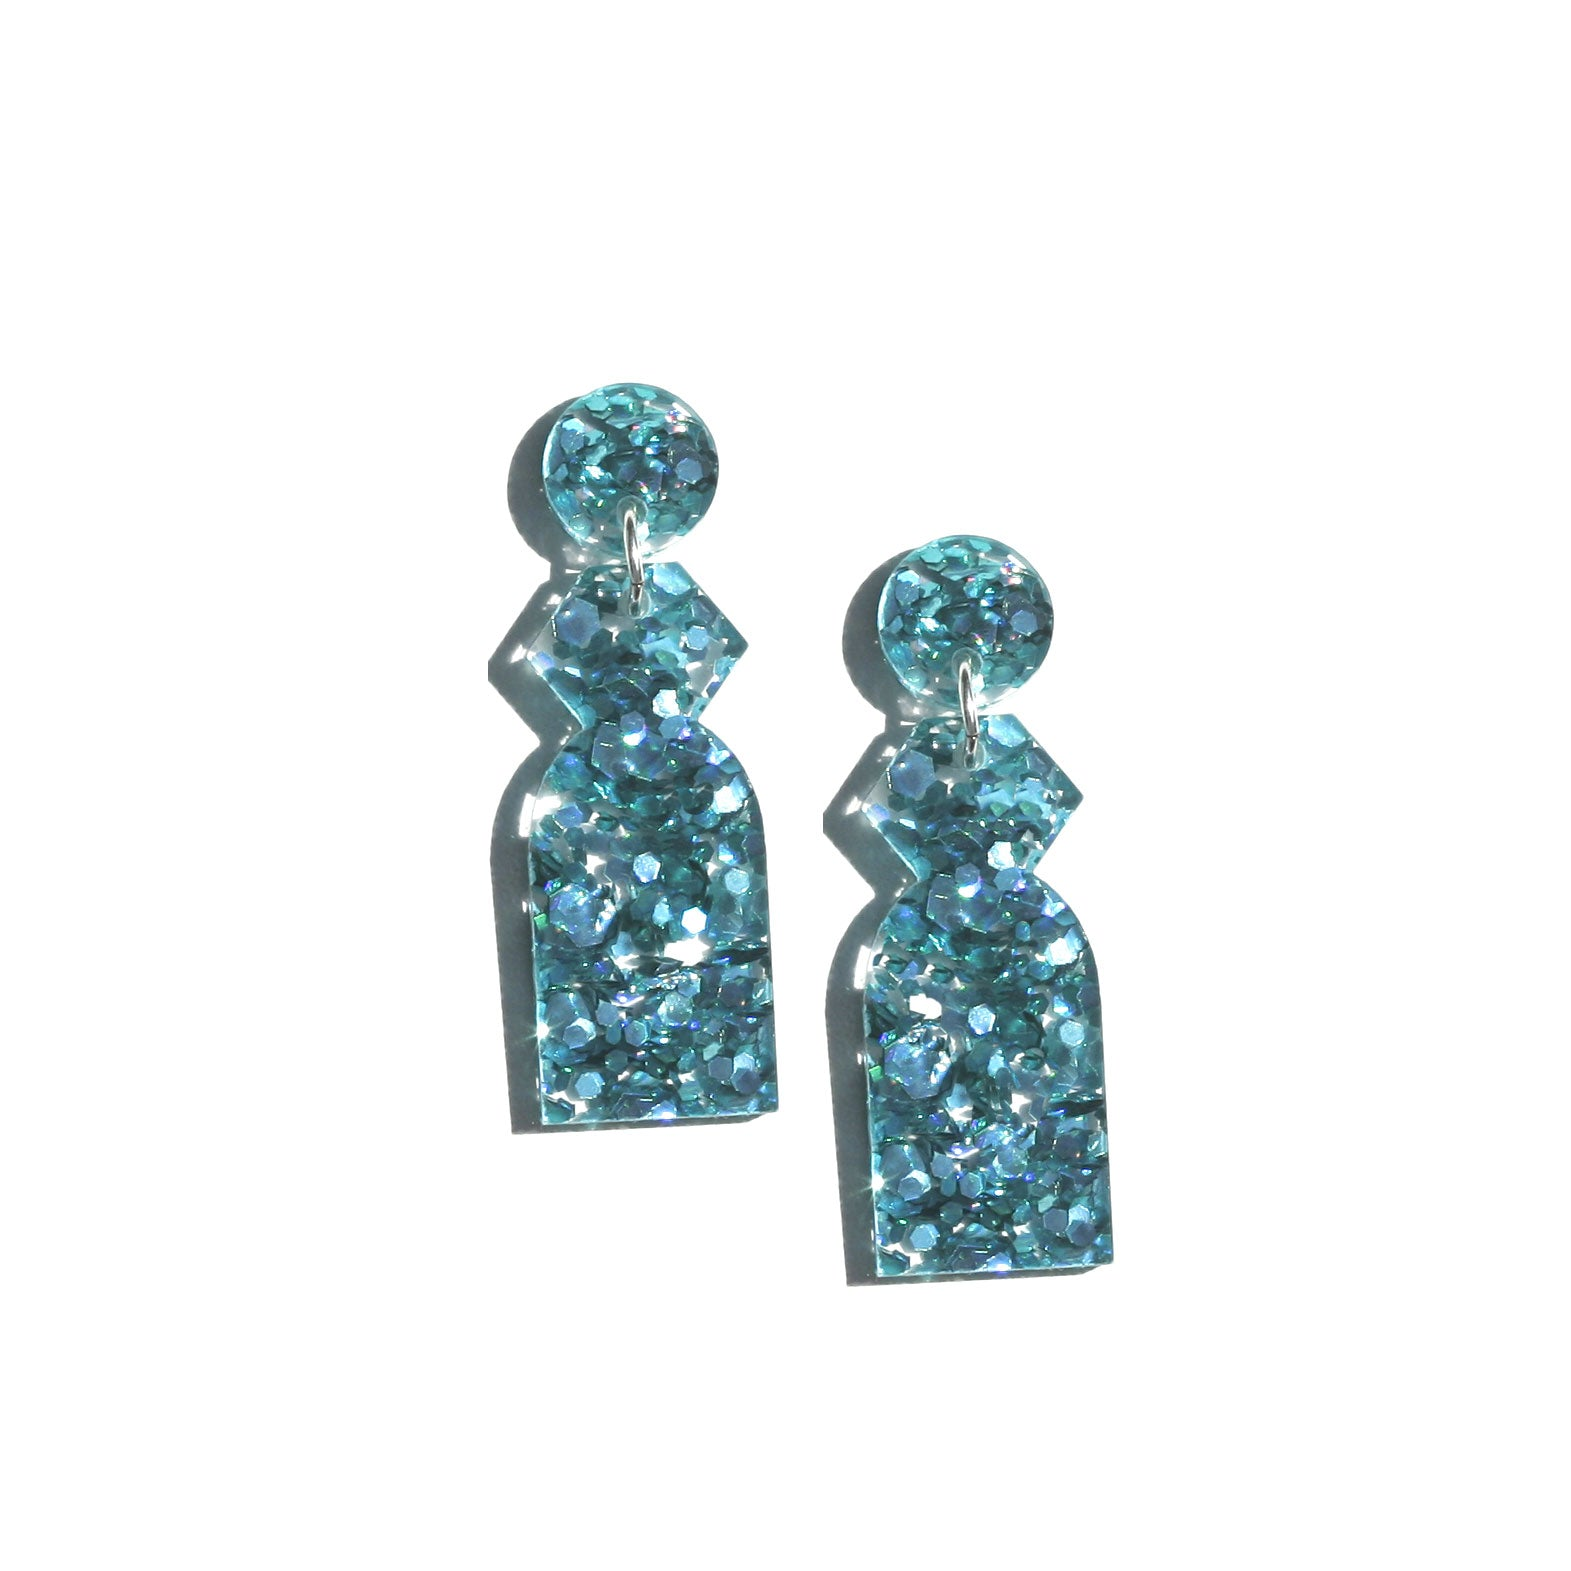 Temple Earrings - Turquoise